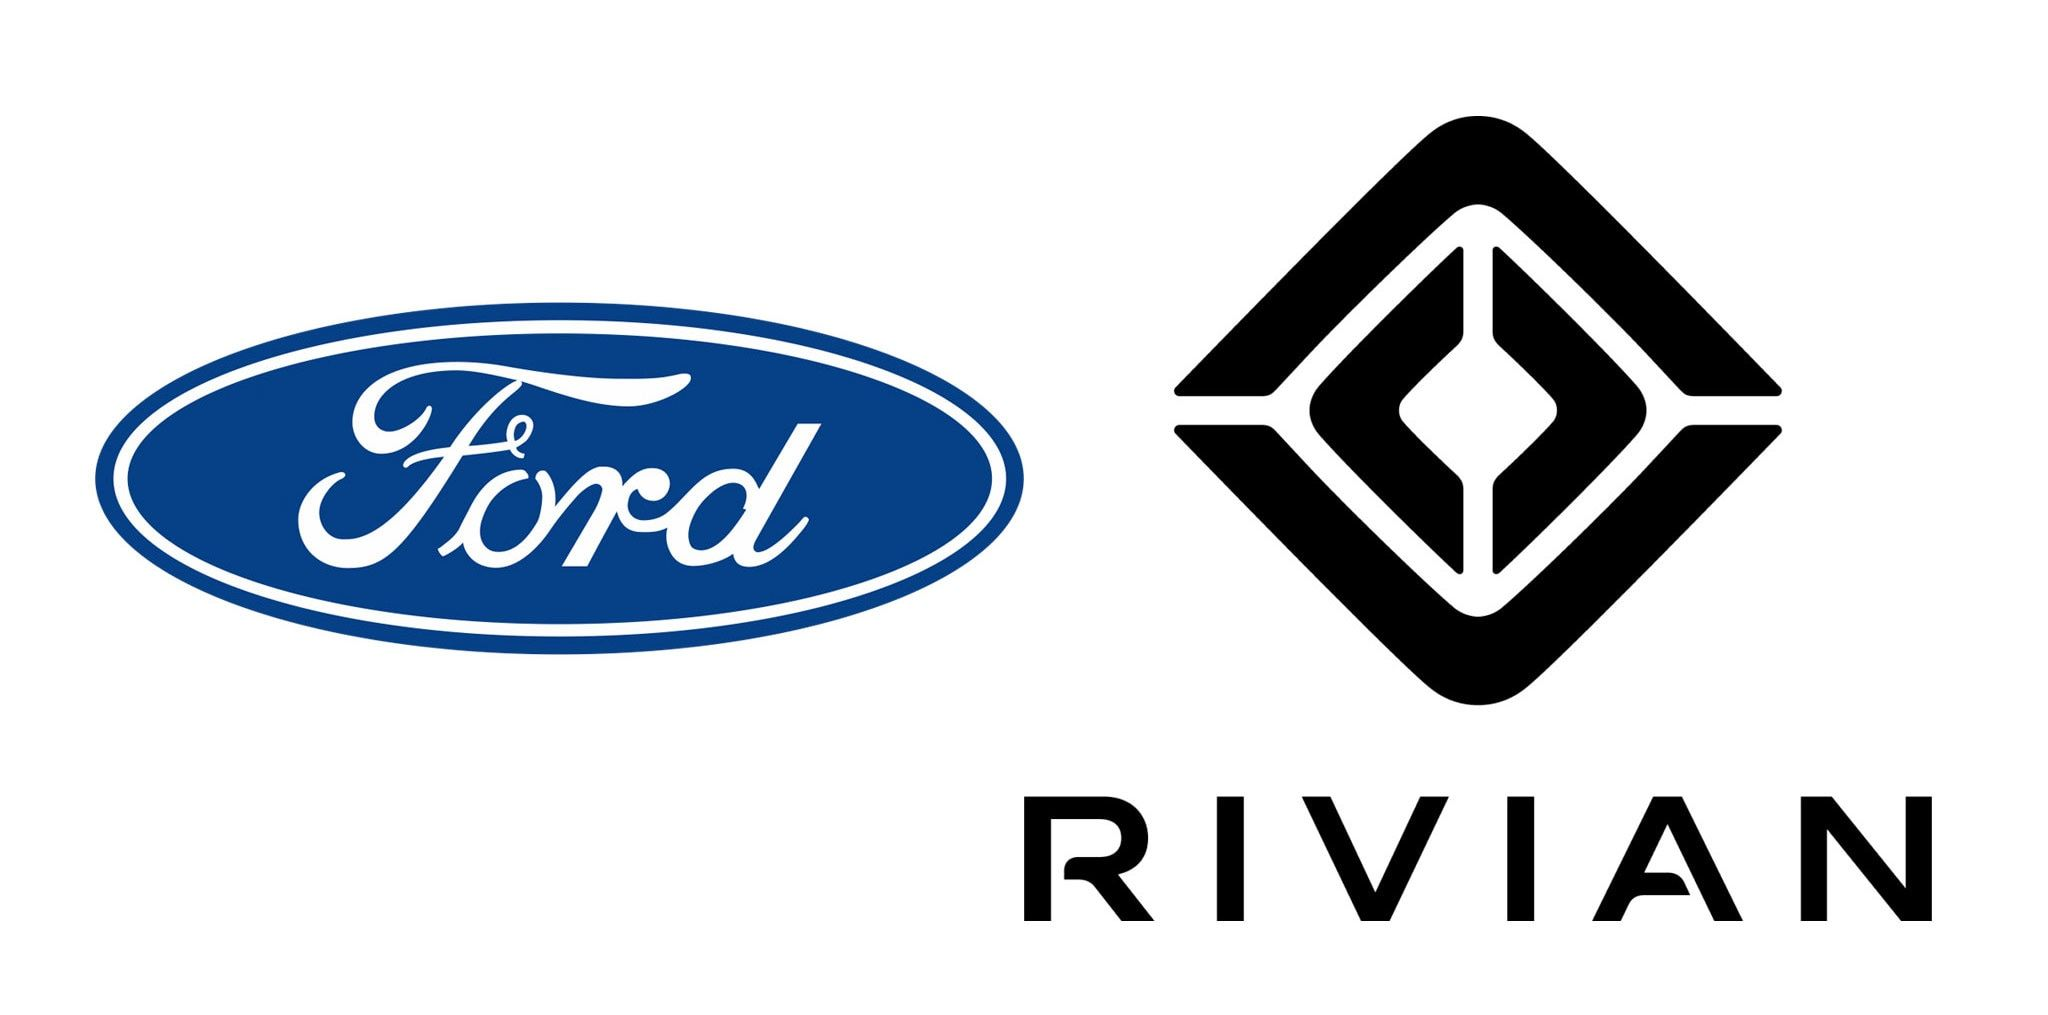 Ford Invests Rivian in a 500 Million Dollars, Opens a New.